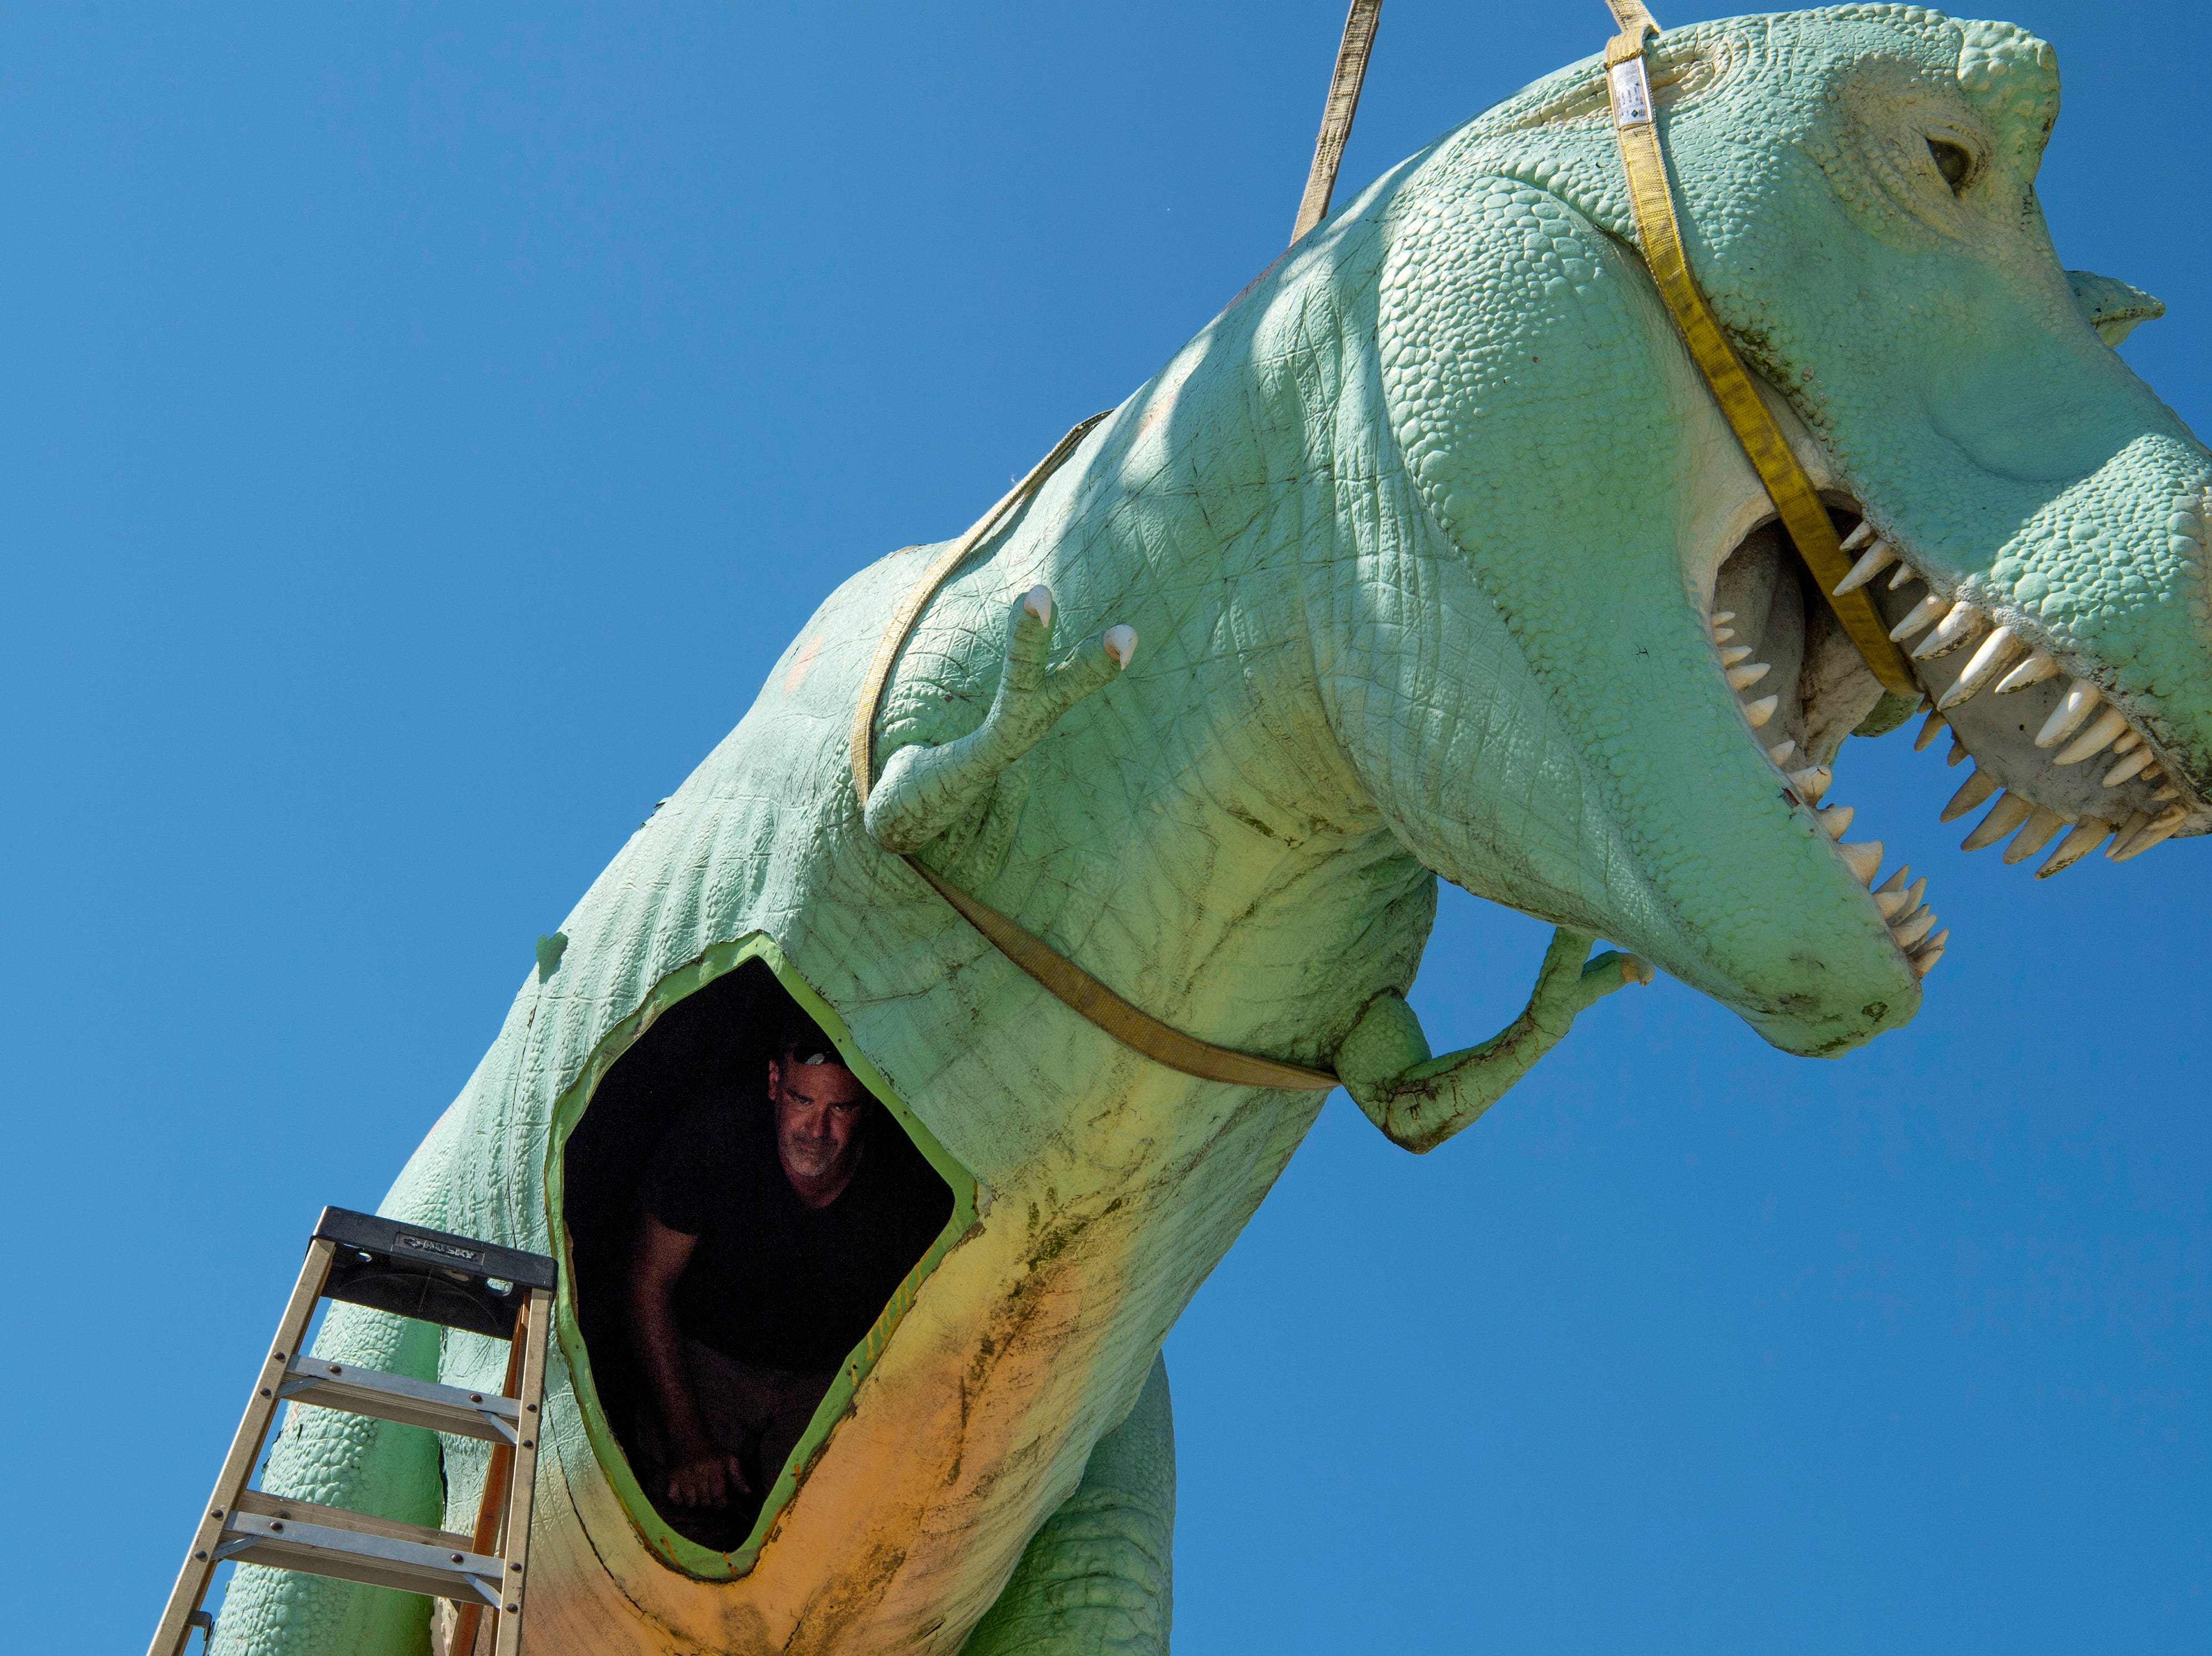 Bart Meyer with Custom Sign of Newburgh, Ind., waits for a wrench inside the belly of Millie, a Tyrannosaurus Rex dinosaur – and the Koch Family Children's Museum of Evansville's most recognizable face – Wednesday morning. Millie has perched atop her pedestal at the corner of Locust and Fifth streets for more than a decade and is getting a new paint job. It is unknown where the green T-Rex will reside after her facelift, but cMoe assures us Millie's new home will be easily seen in the Downtown Evansville area.